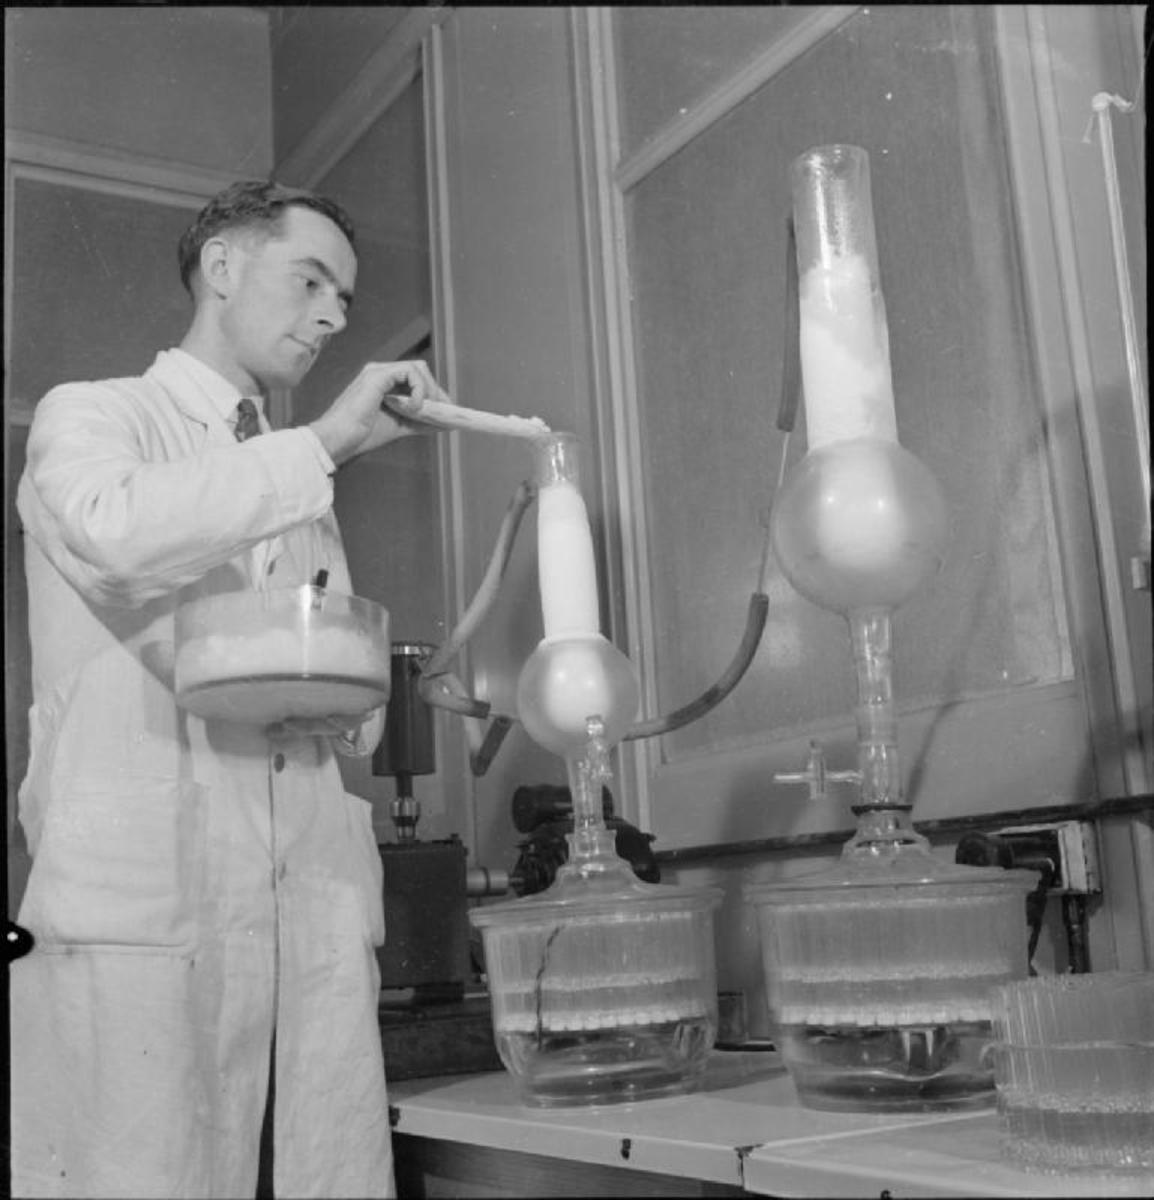 A technician preparing penicillin in 1943.